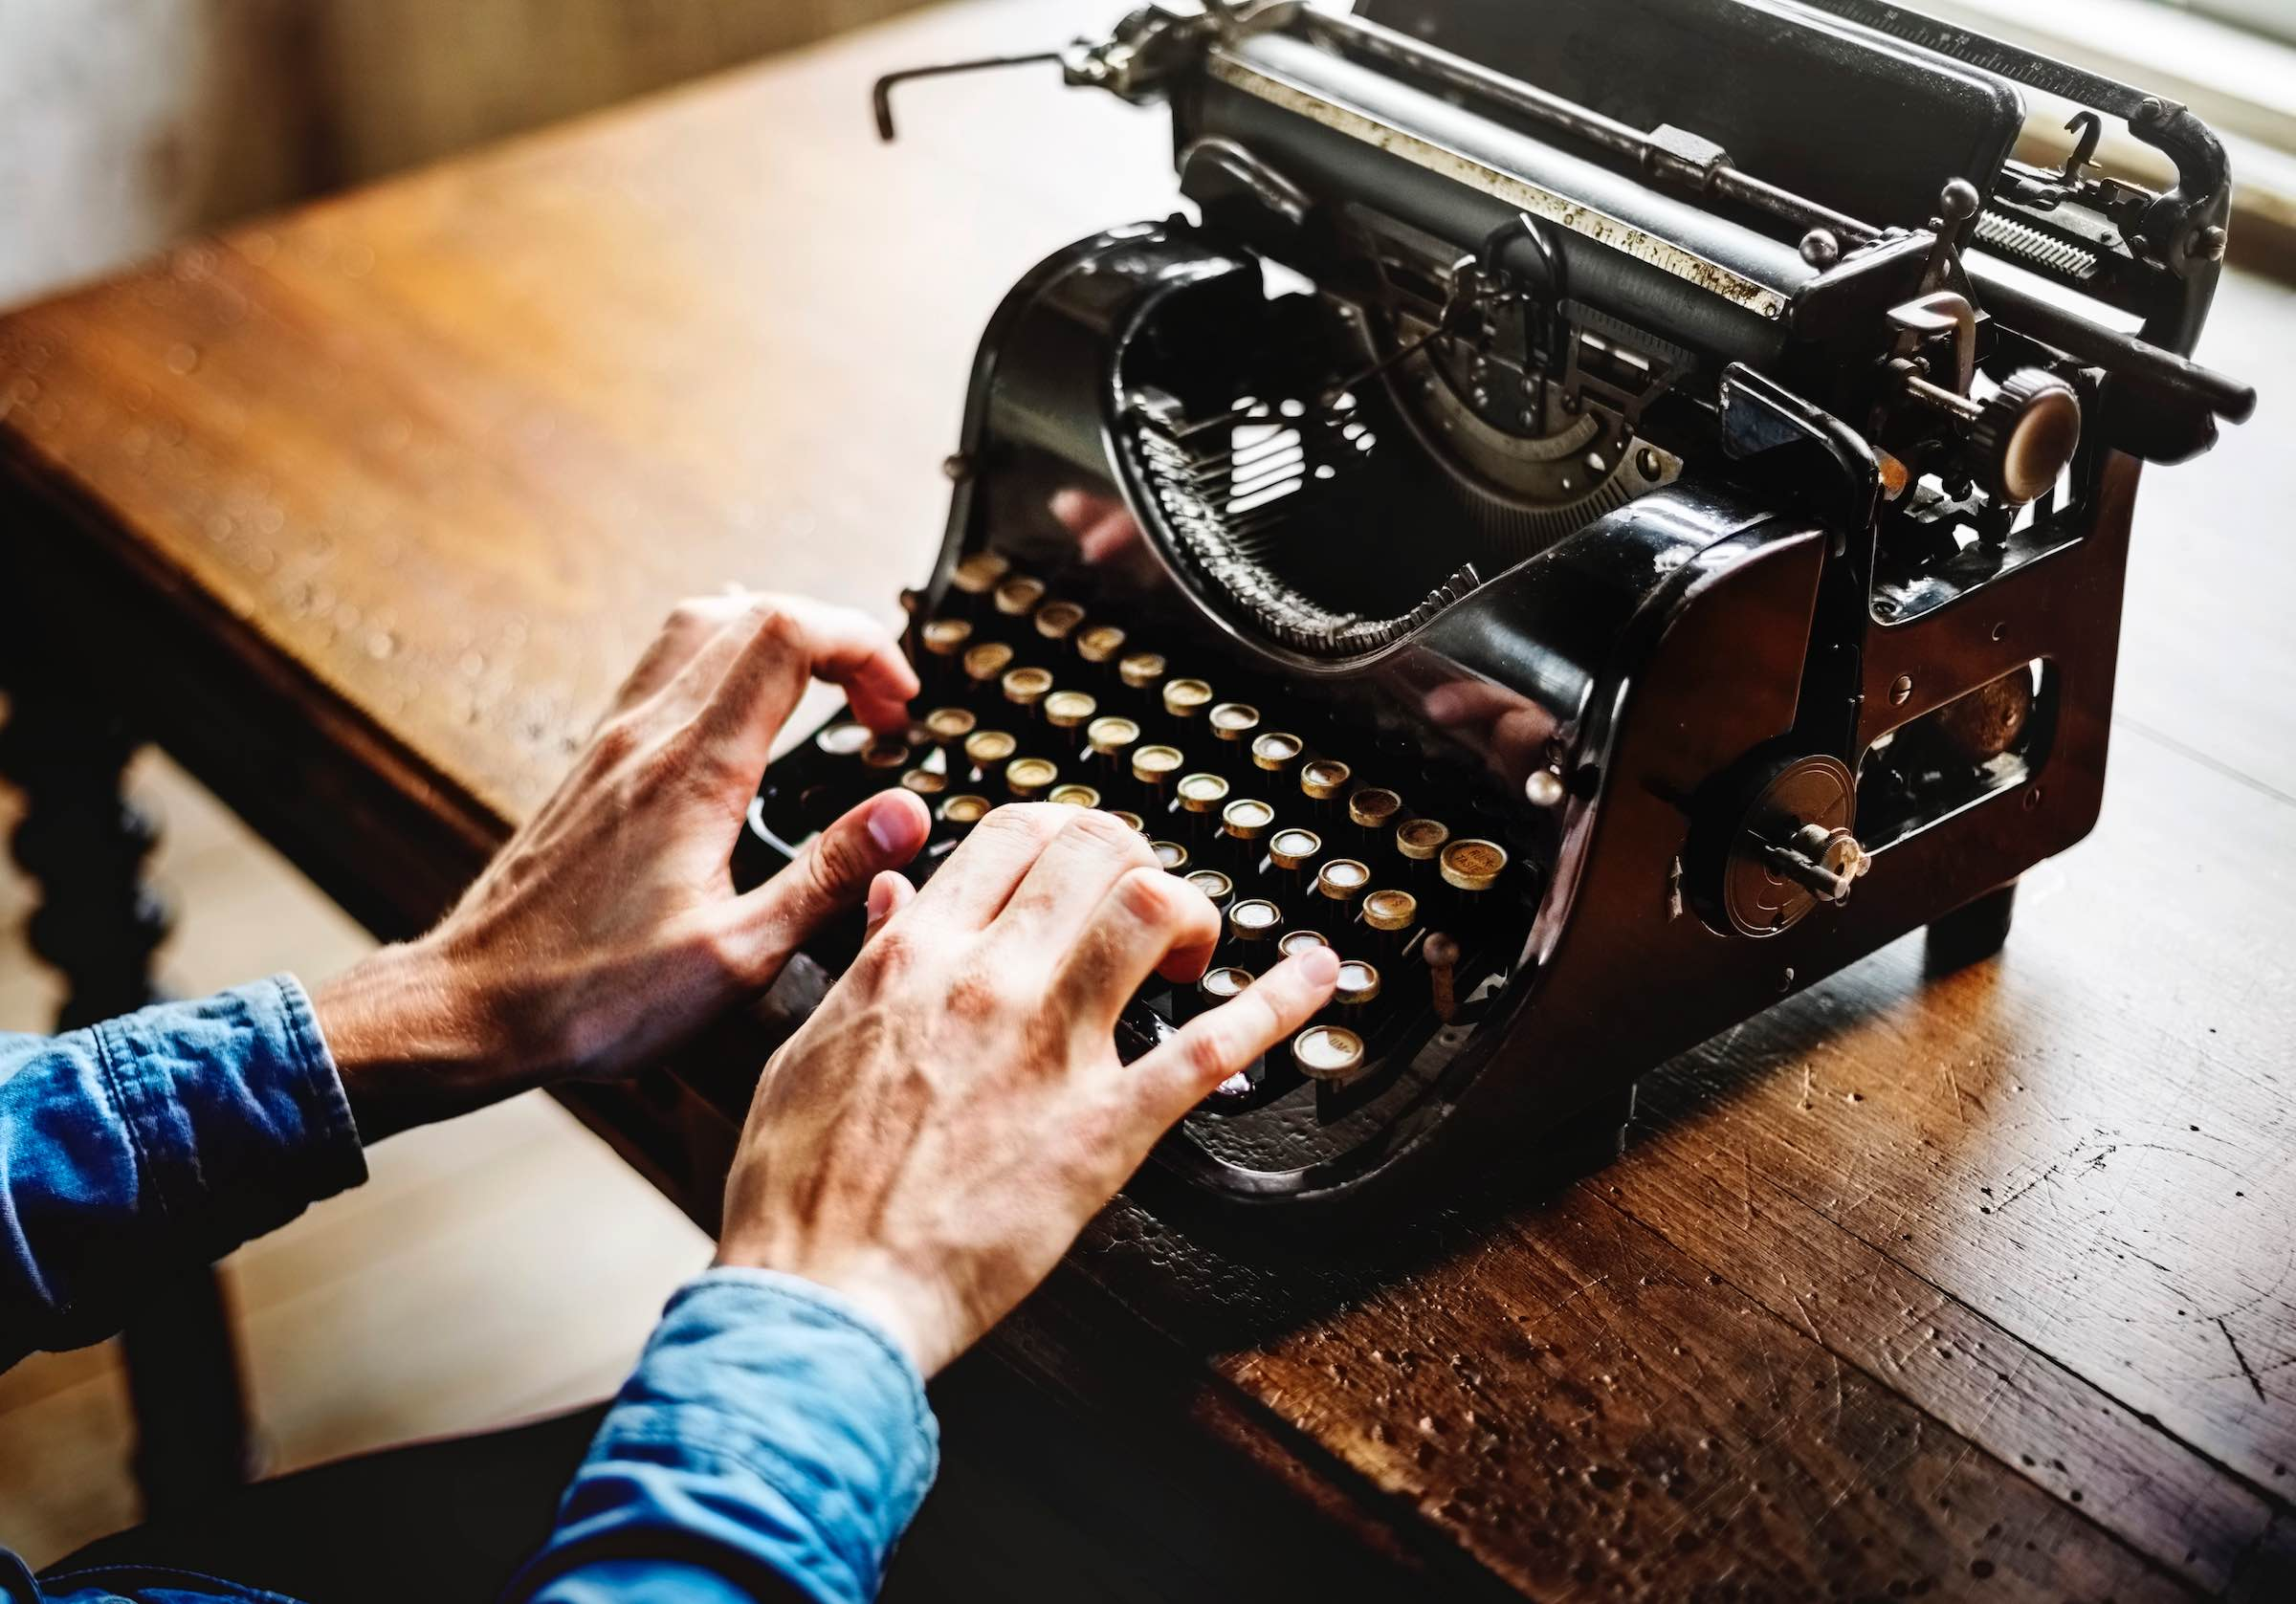 Finish Line's groundbreaking Script Competition gives writers a chance to cultivate an exciting new career, not just win a few hundred bucks.